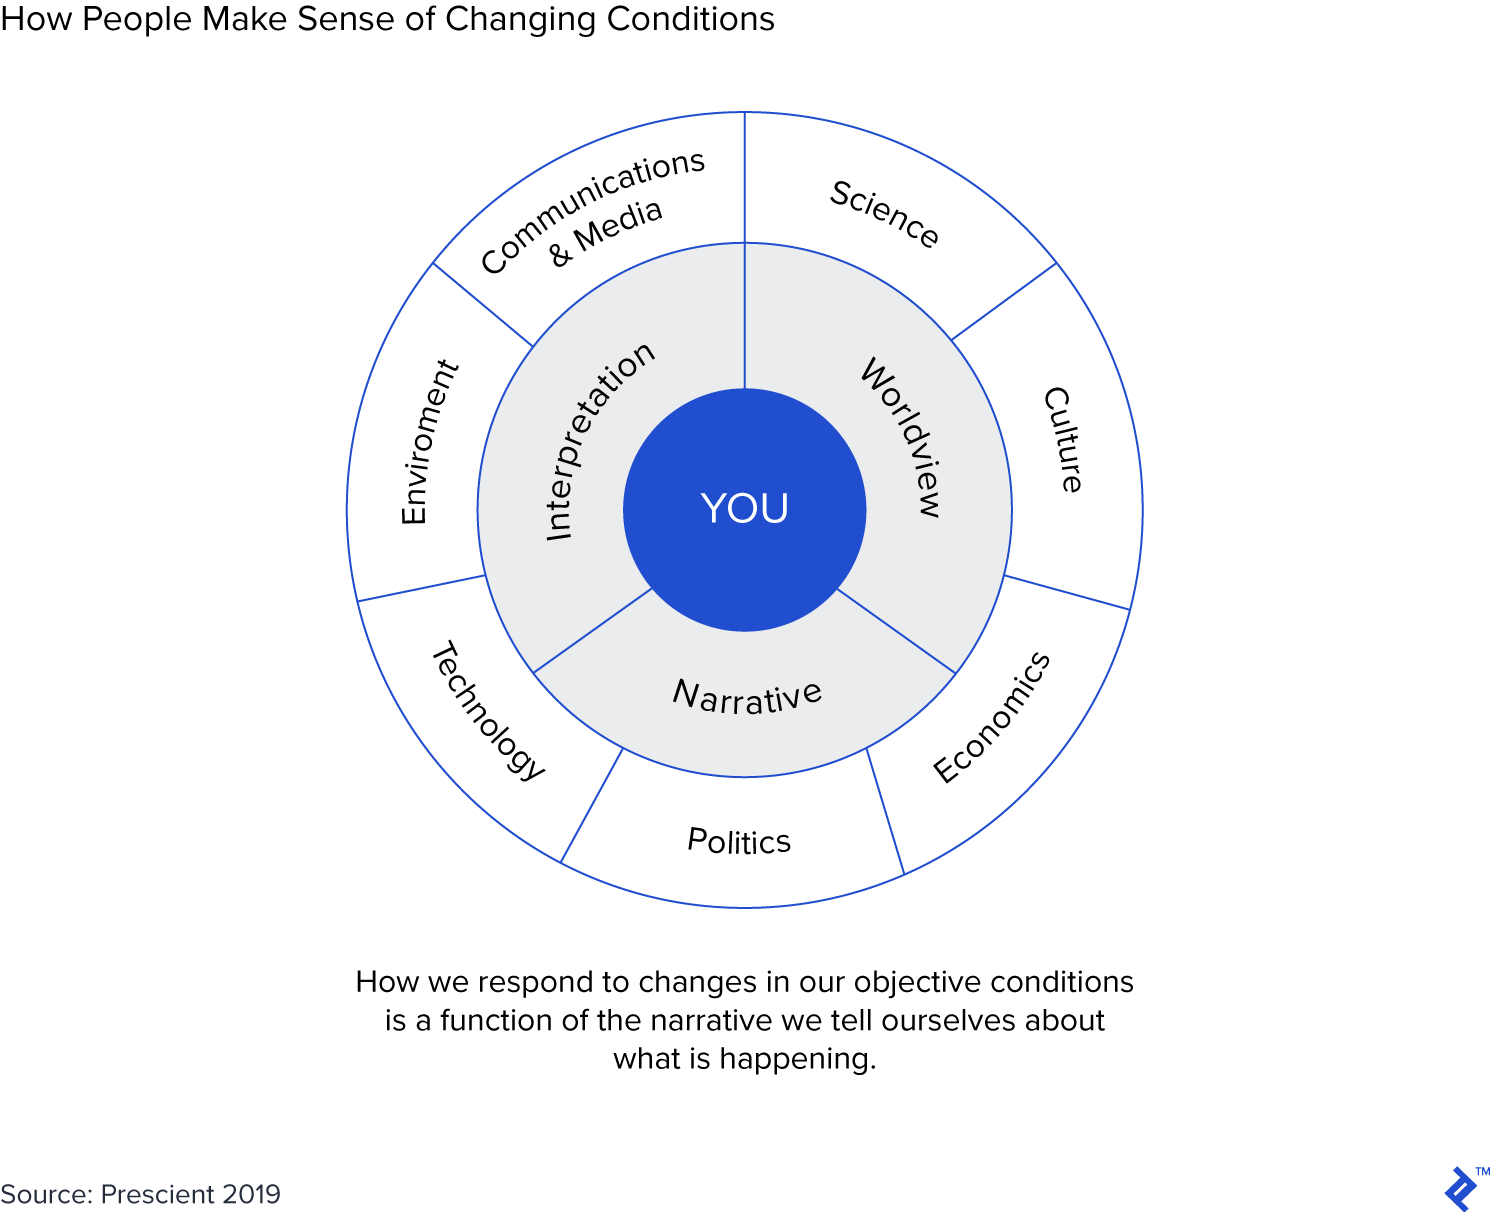 How People Make Sense of Changing Conditions